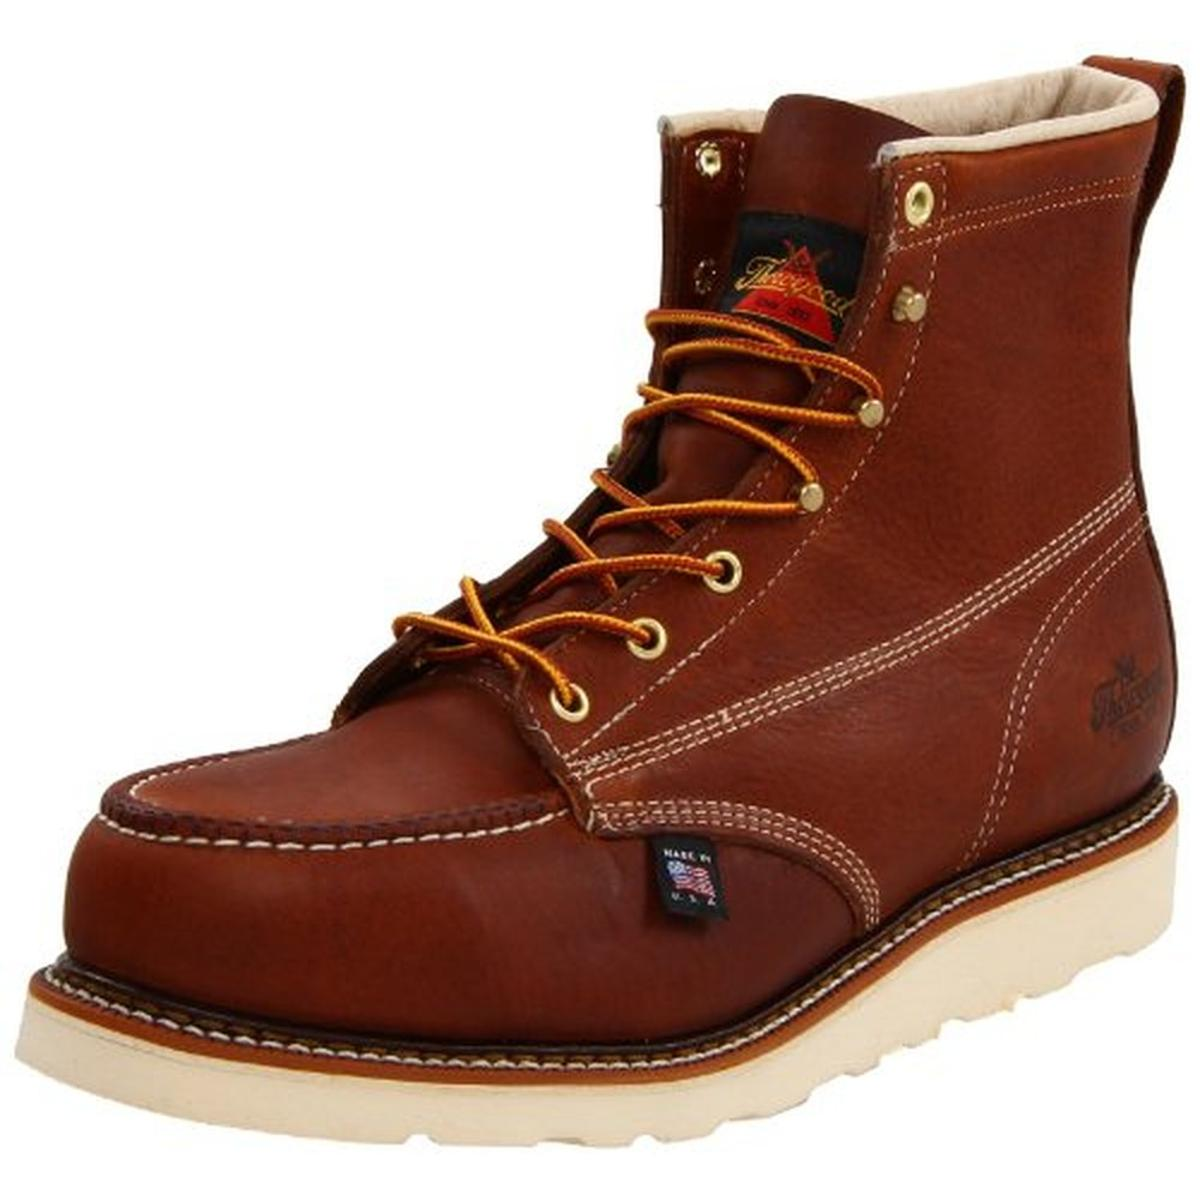 "Thorogood Men's American Heritage 6"" Wedge Work Boot Steel Toe - 804-4200"